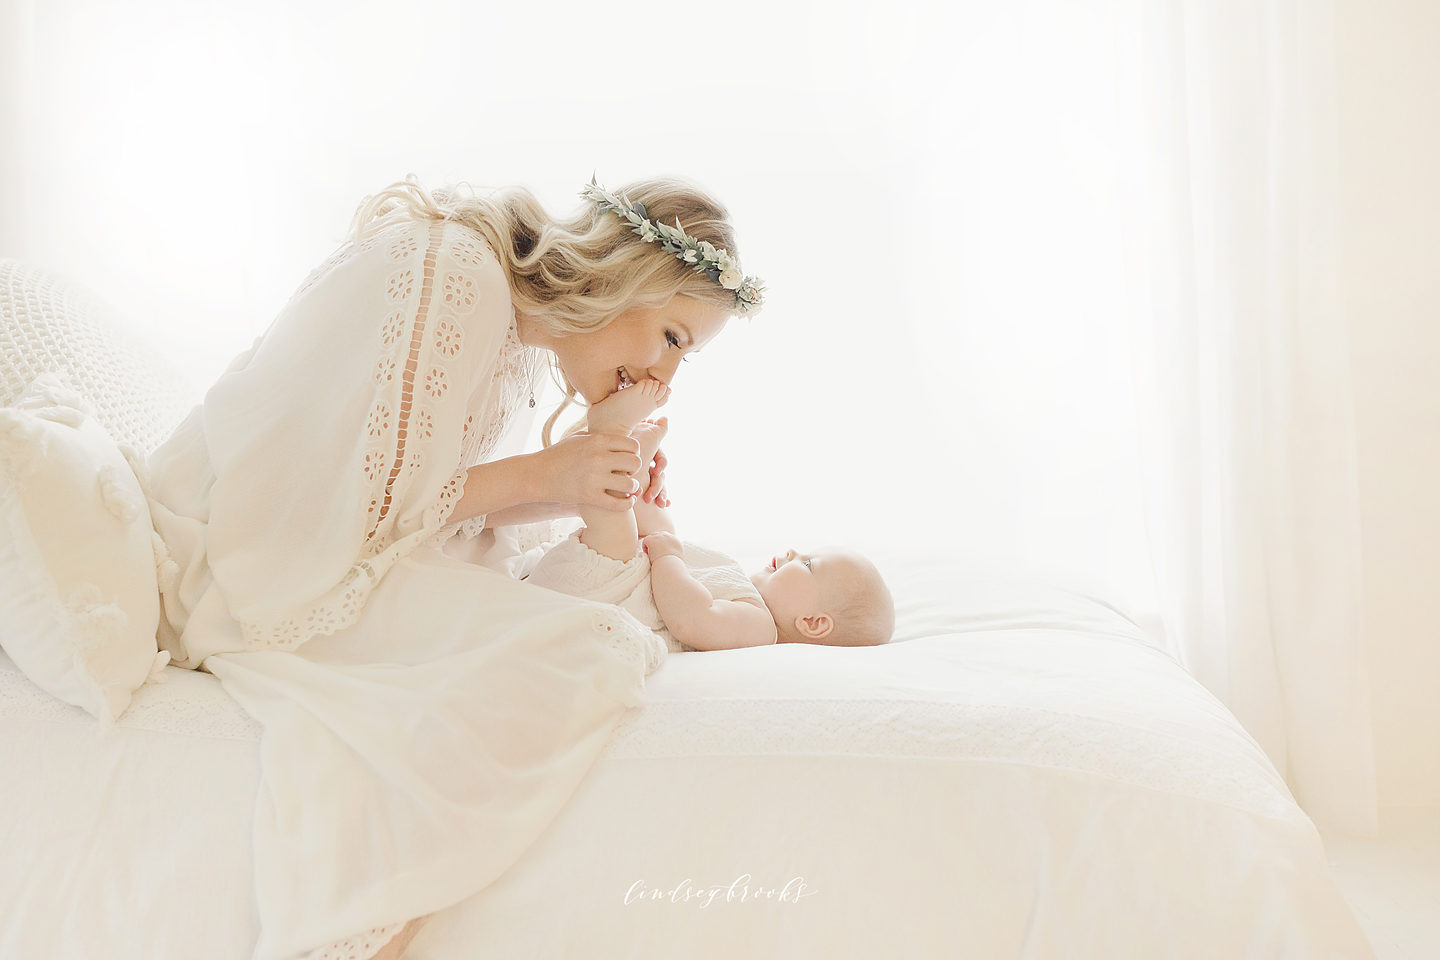 oklahoma_city_okc_mommy_and_me_motherhood_photographer_baby_child_flower_crown_halo_six_months_organic_simple_photos_4.png